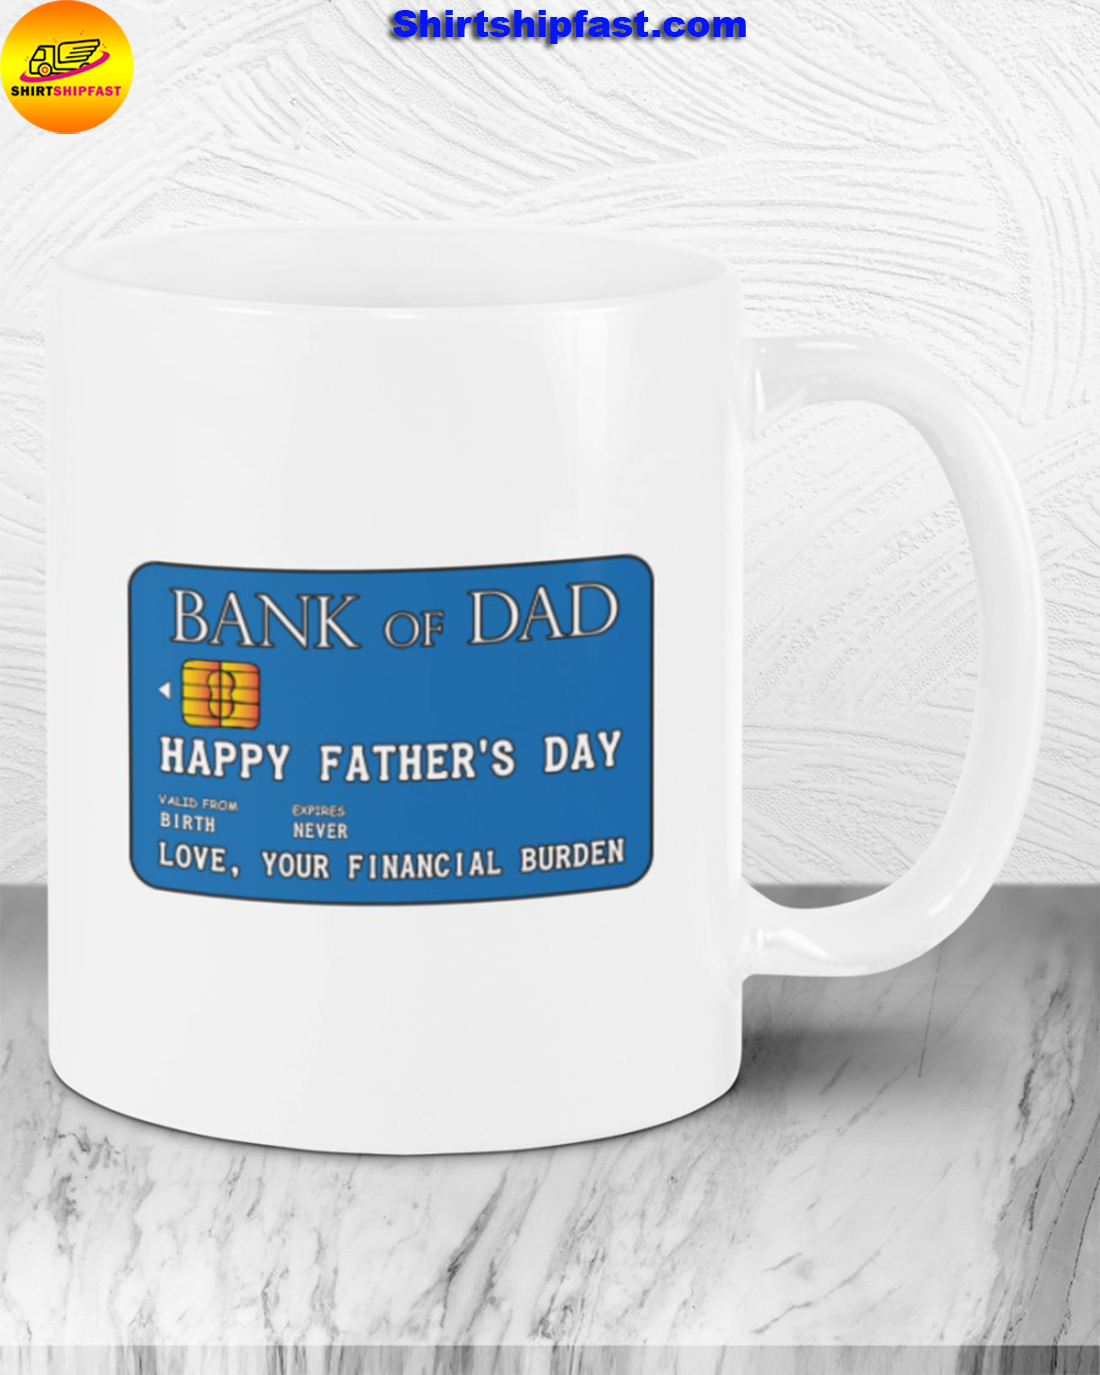 Bank of dad Happy father's day mug